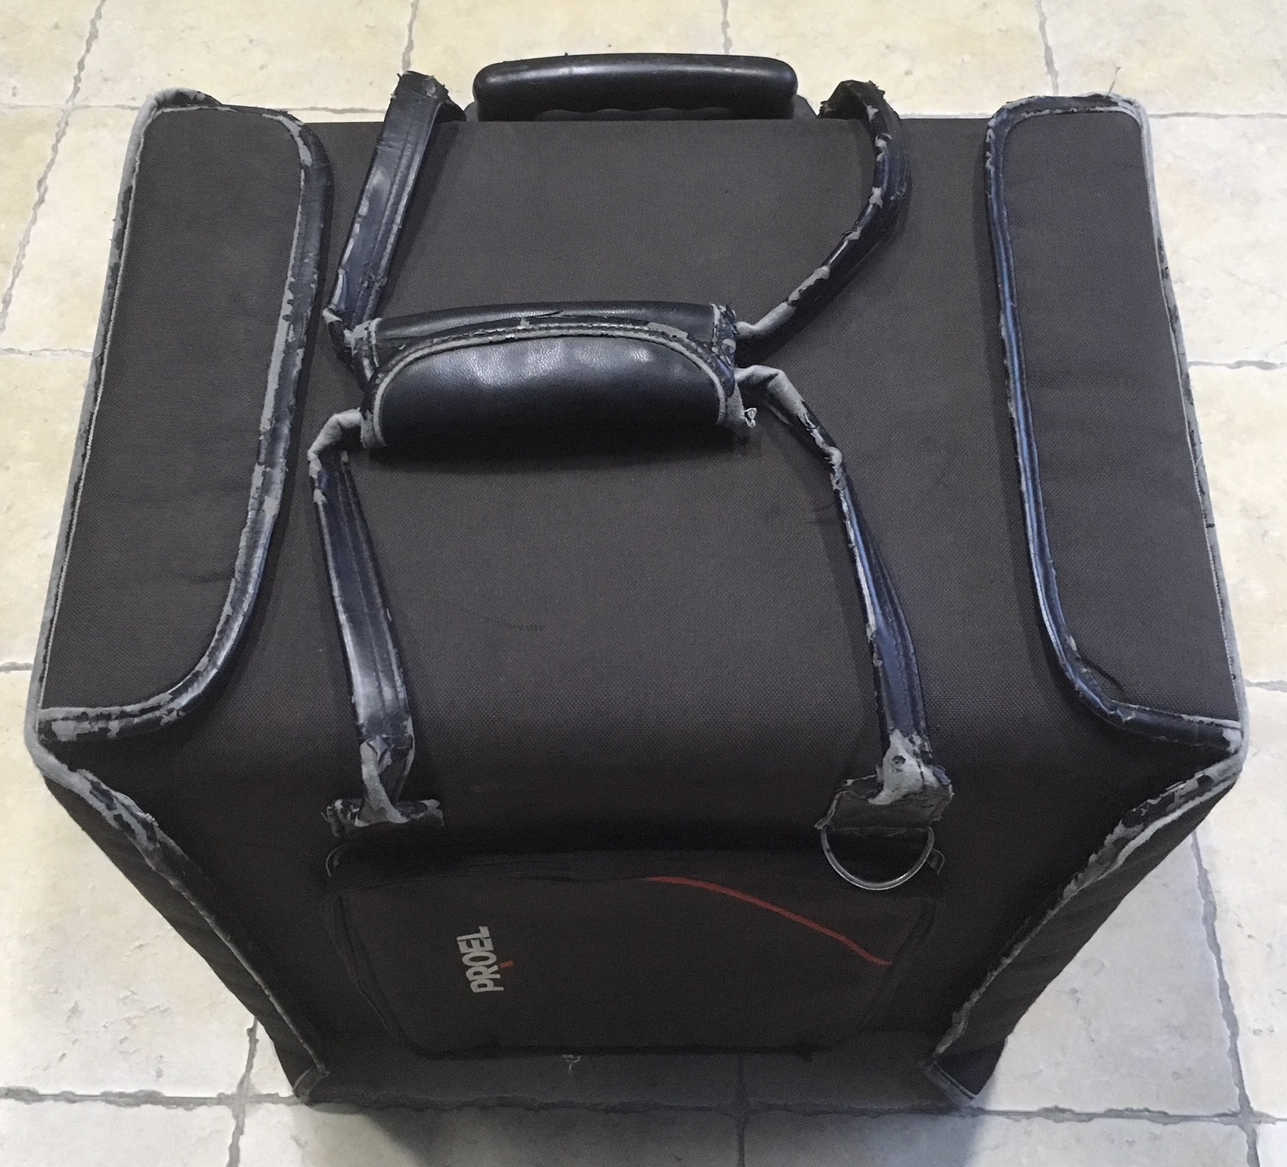 PROEL BAGCR206PW BORSA FLIGHT CASE TROLLEY PER 6 UNITÀ RACK USAT